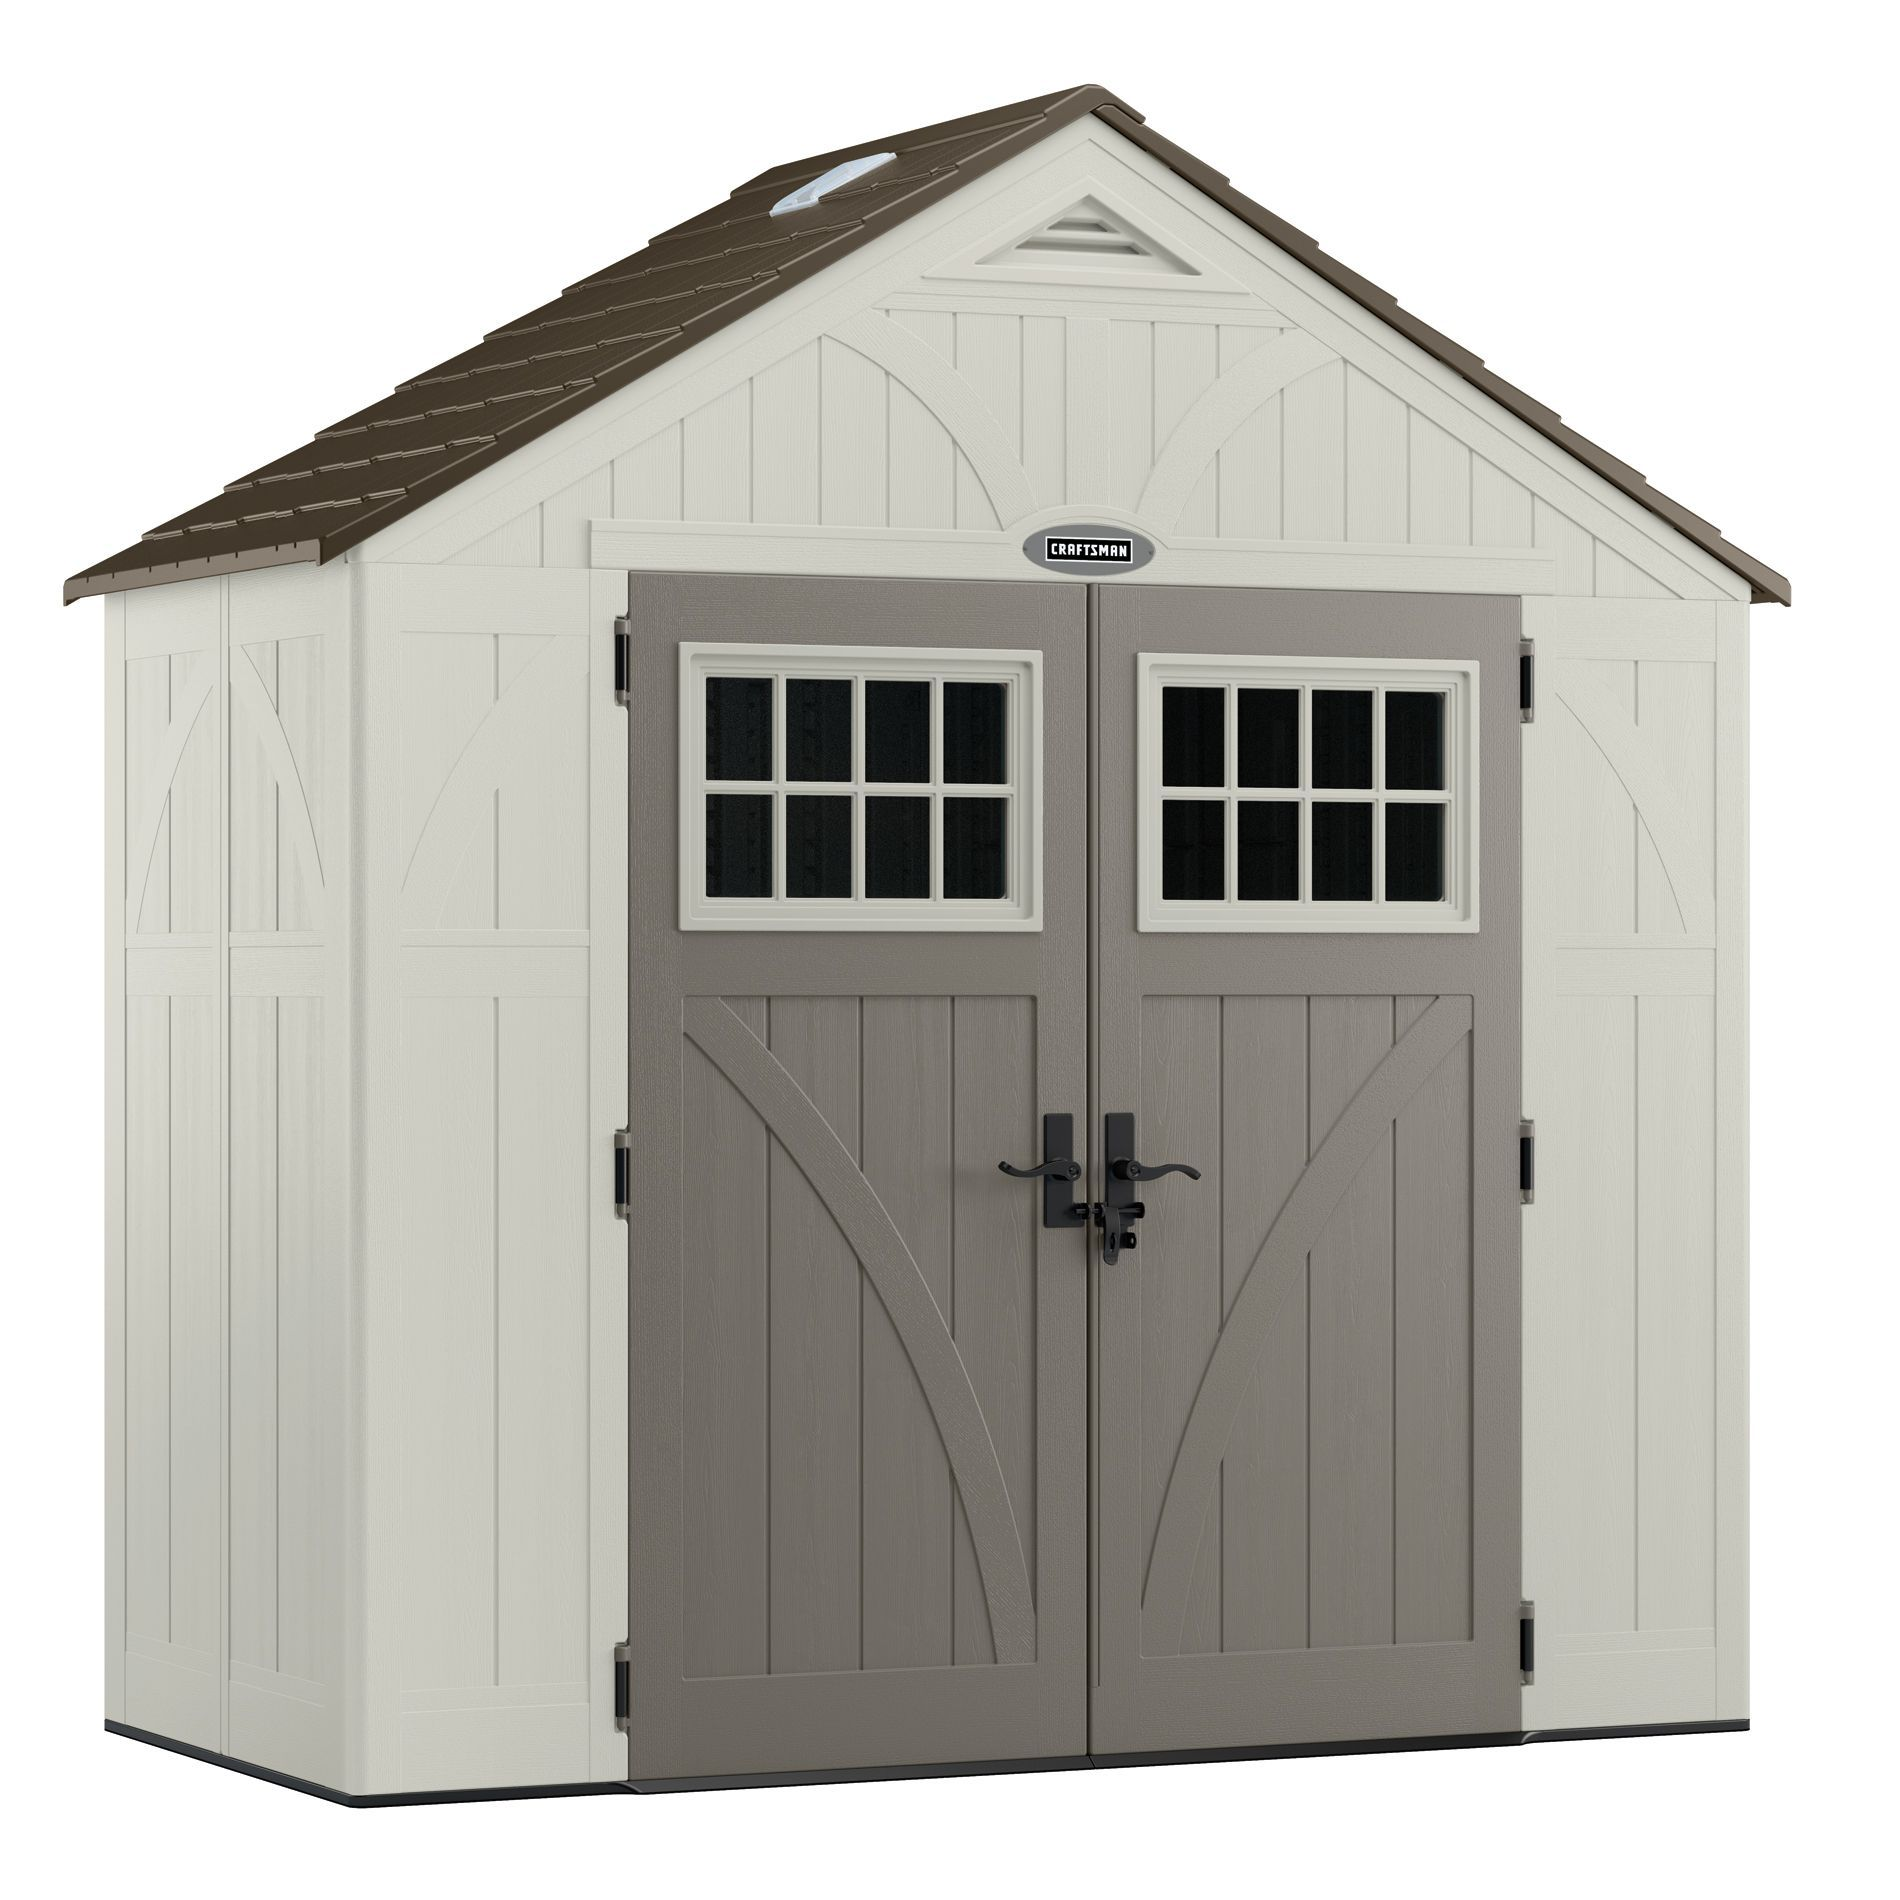 An Overview Of Rubbermaid Shed Decorifusta In 2020 Plastic Storage Sheds Suncast Storage Shed Outdoor Storage Sheds